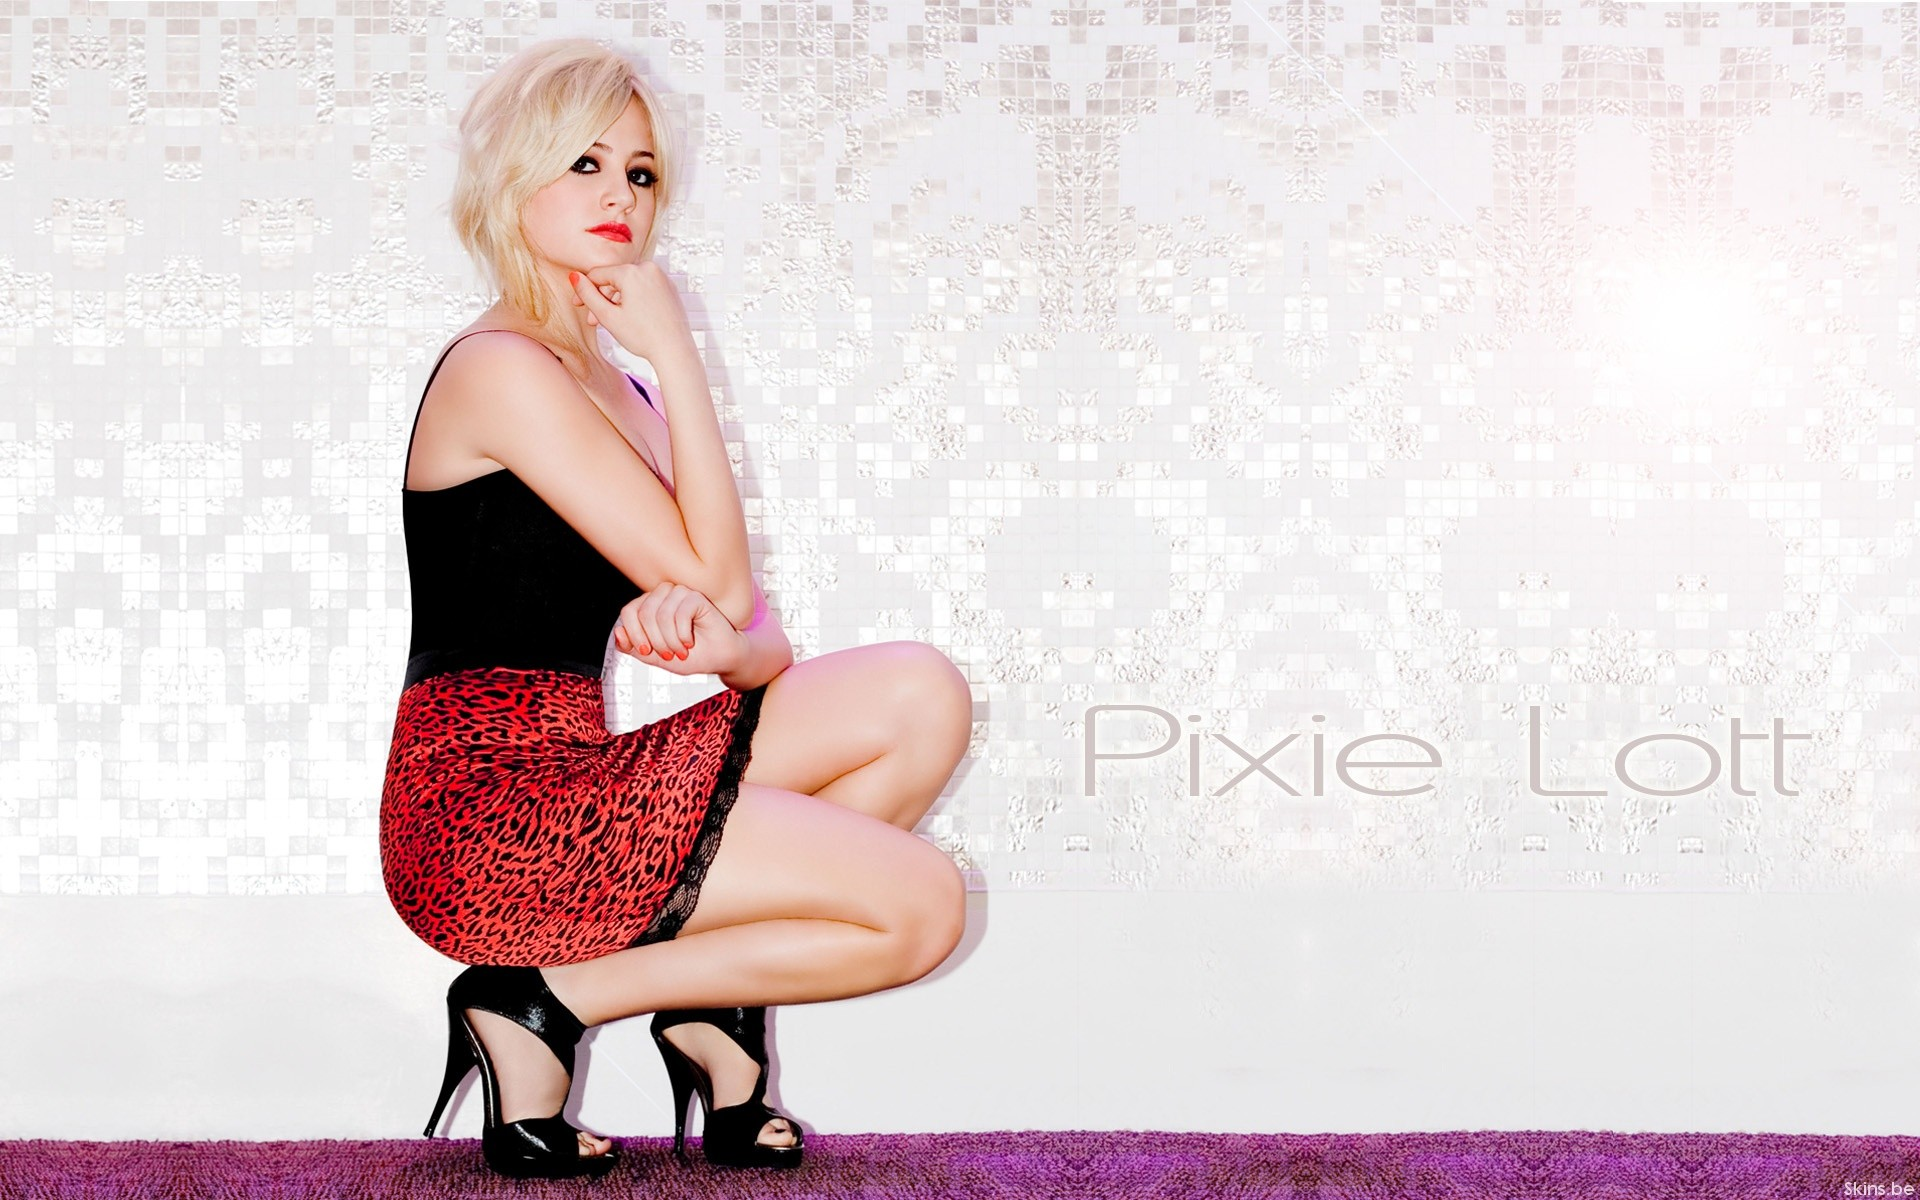 Pixie Lott Backgrounds Pictures Images